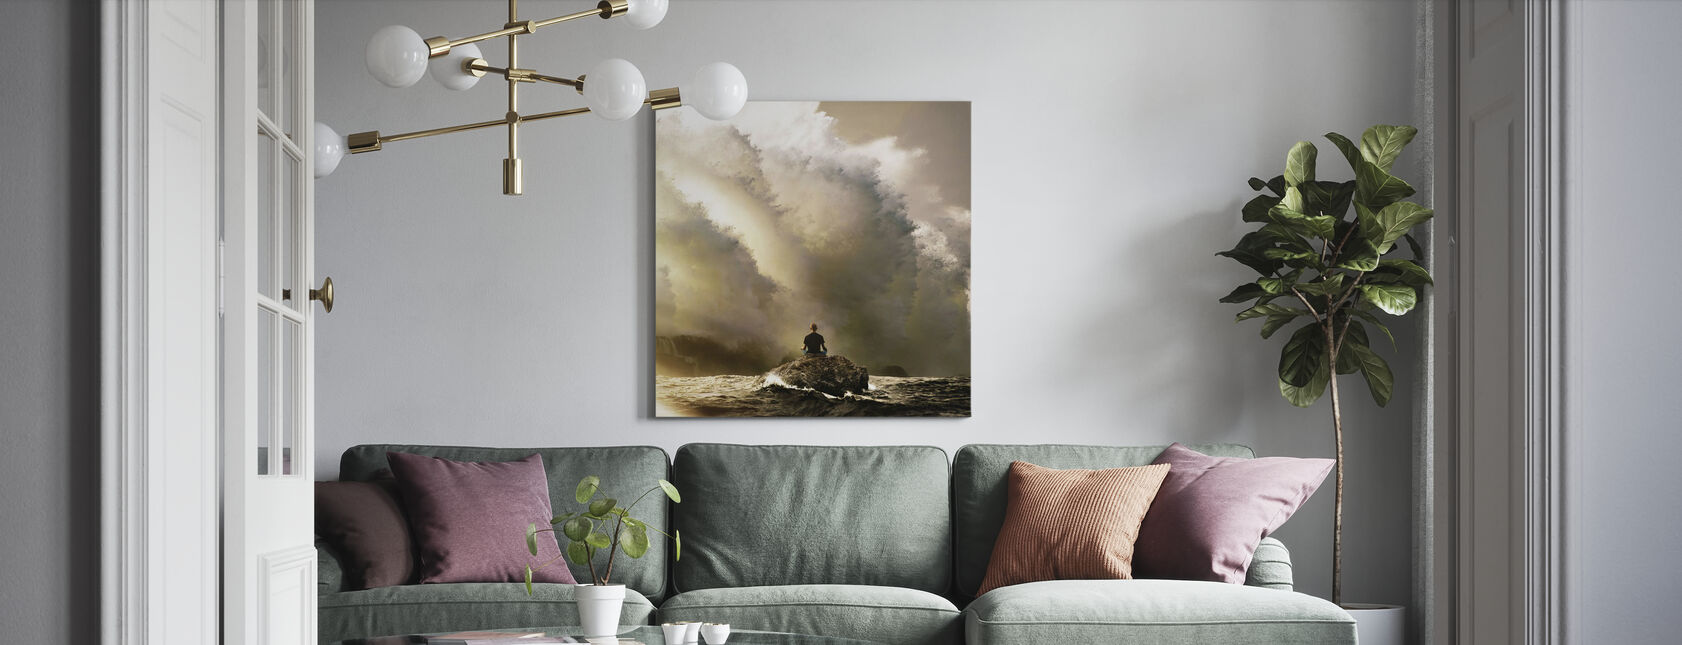 Slow Breathing - Canvas print - Living Room